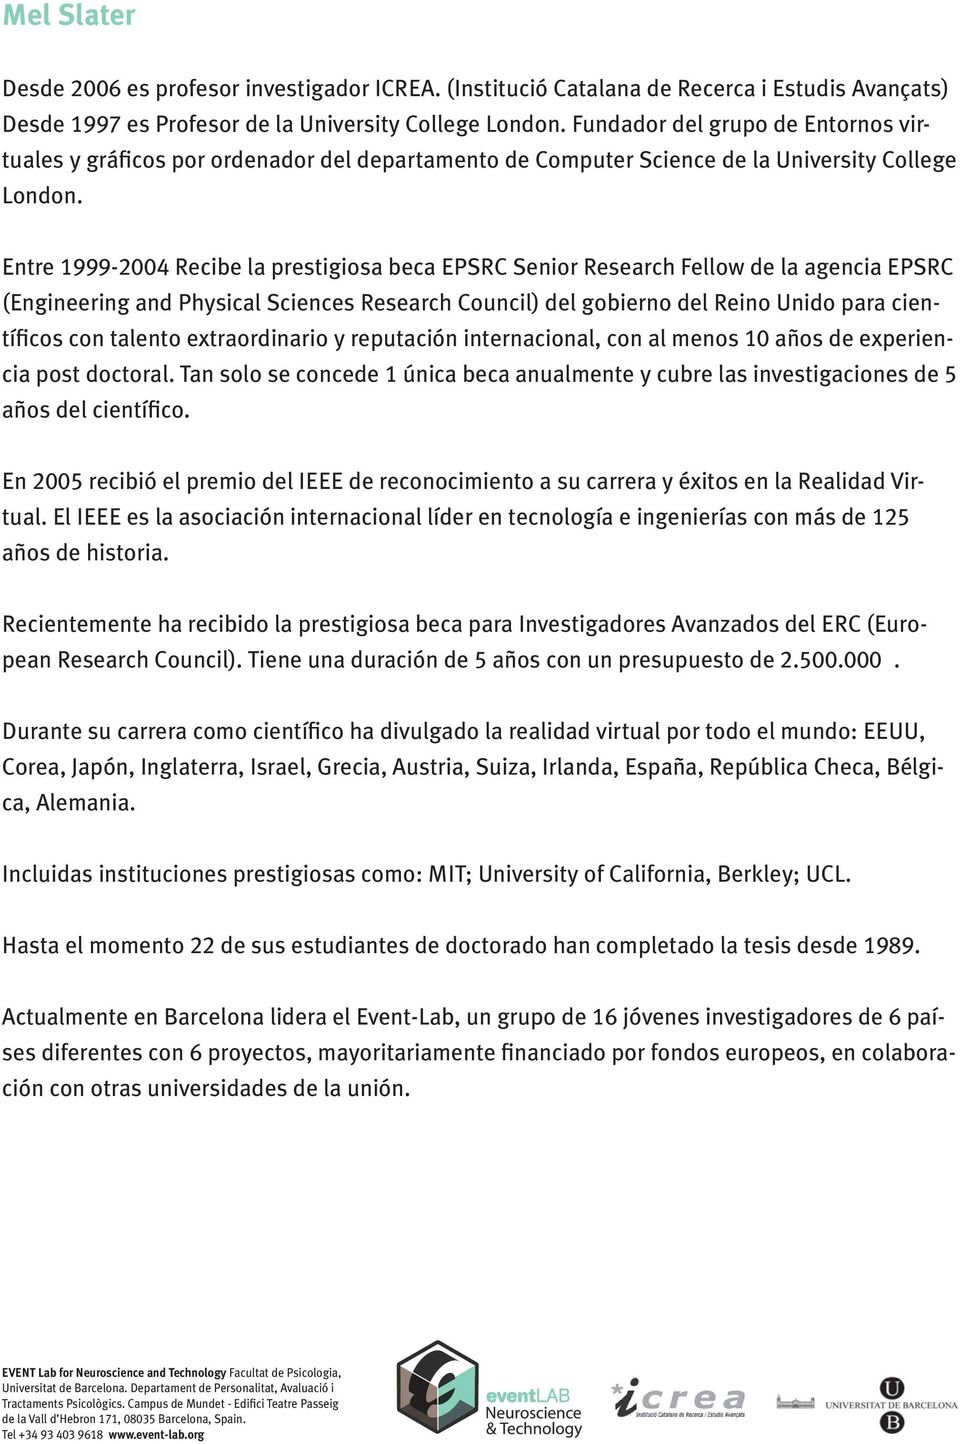 Entre 1999-2004 Recibe la prestigiosa beca EPSRC Senior Research Fellow de la agencia EPSRC (Engineering and Physical Sciences Research Council) del gobierno del Reino Unido para científicos con